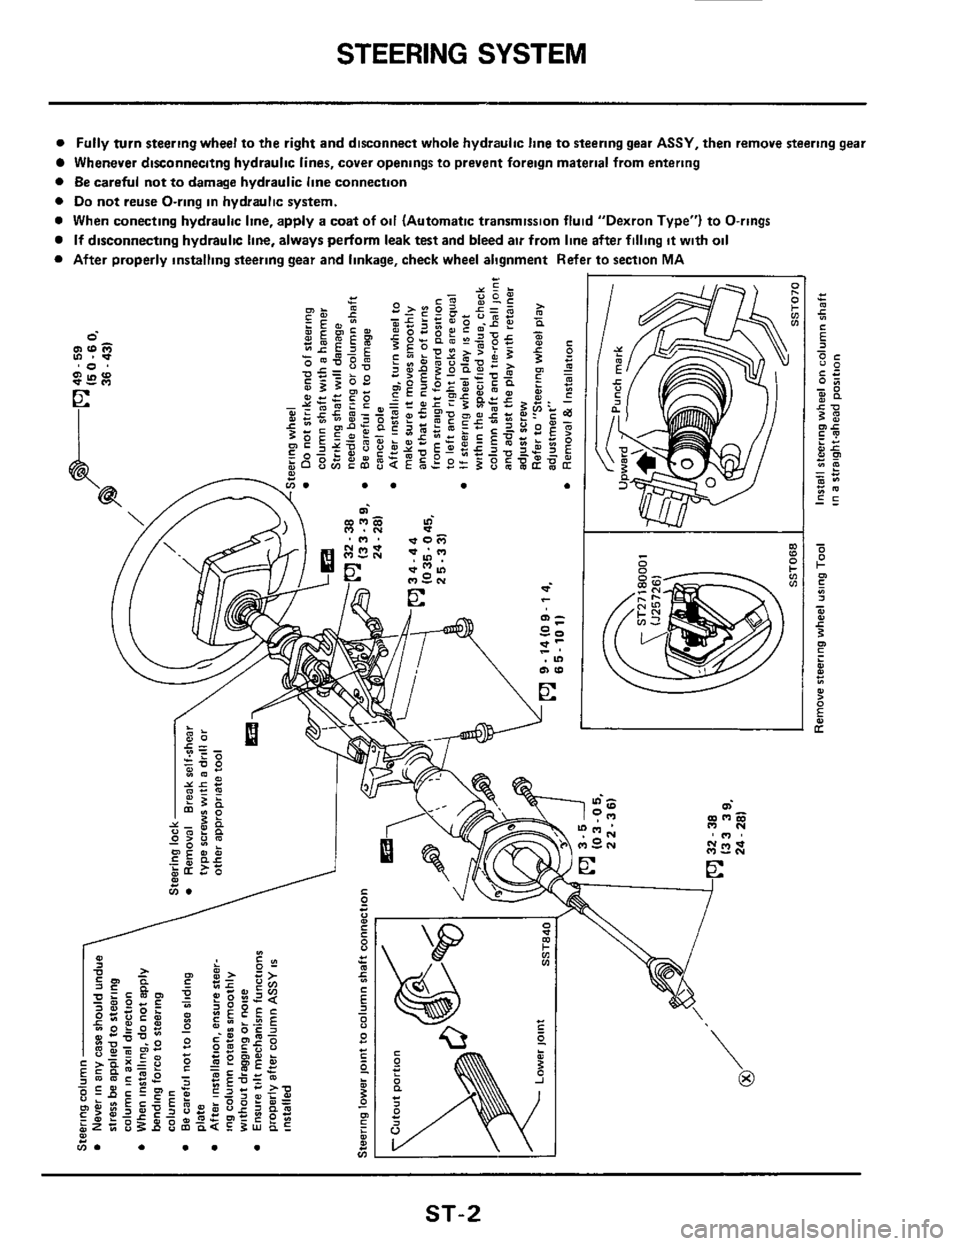 hight resolution of 63 willys jeep wiring diagram jeep auto wiring diagram 1951 willys pickup wiring diagram 1955 willys pickup wiring diagram